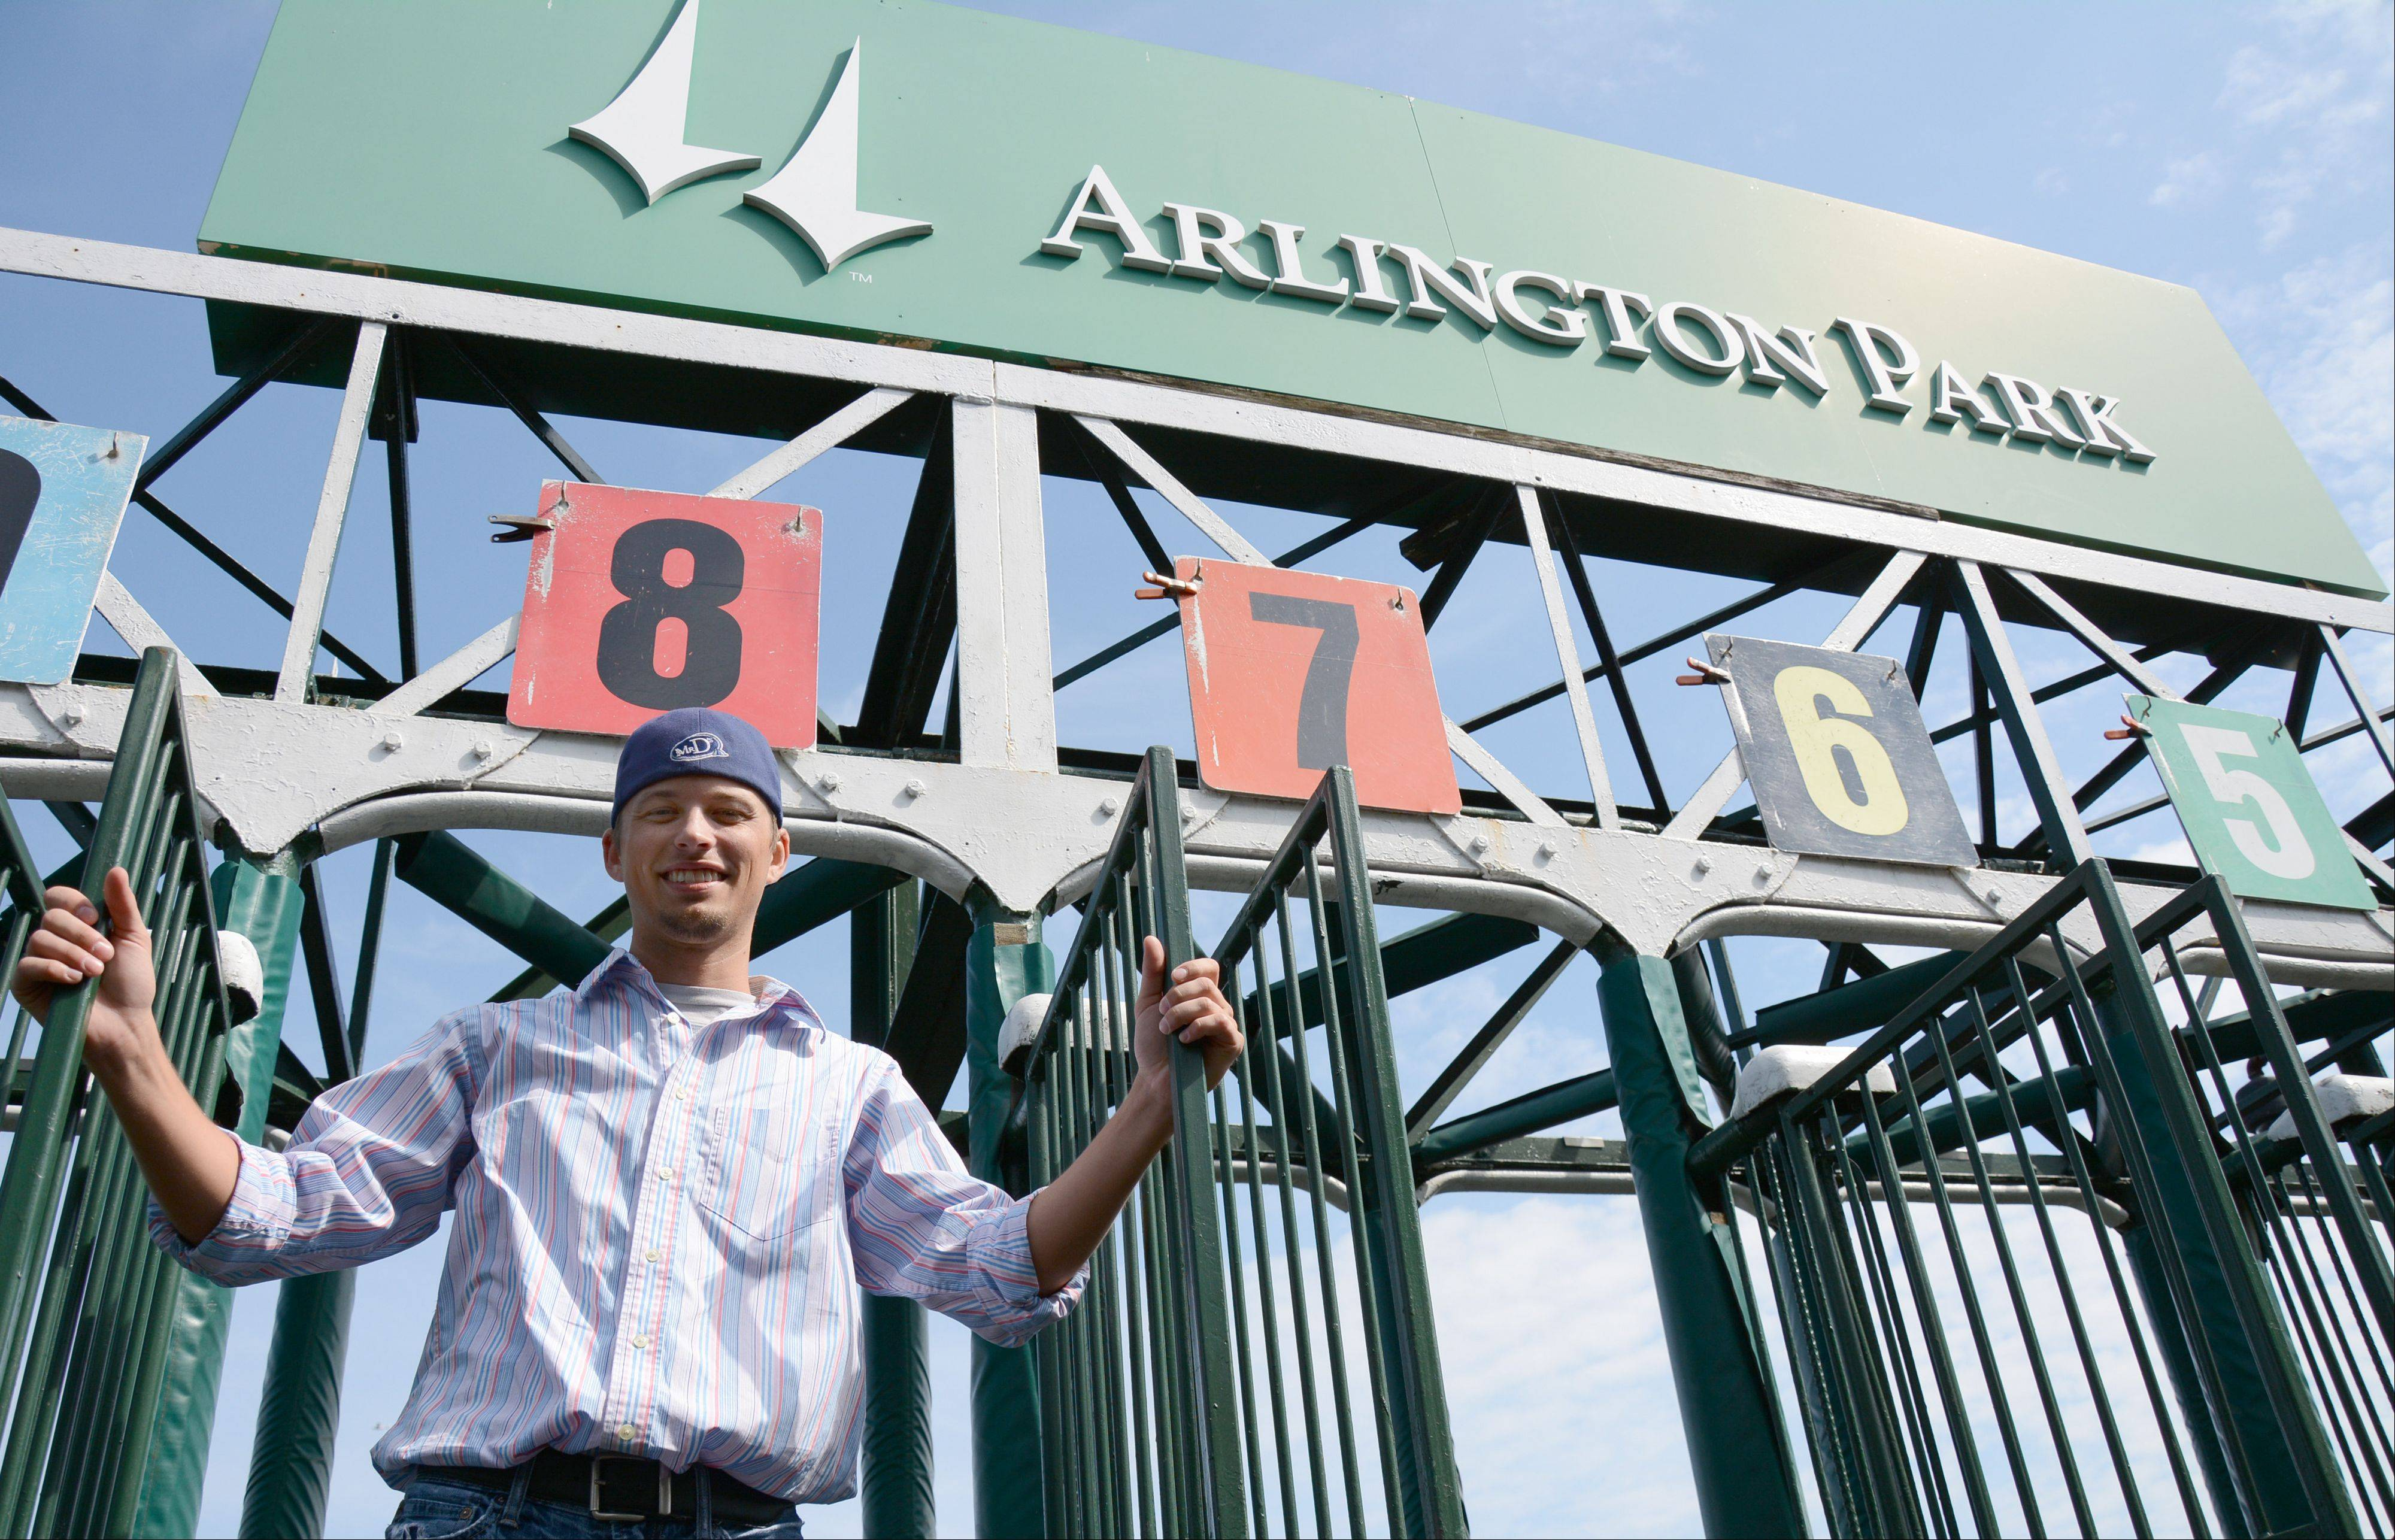 Brandon Meier recently switched from riding race horses as a jockey to working the starting gate at Arlington International Racecourse. Meier, a Wheaton native who now lives in Wheeling, is the youngest person working the starting gate.